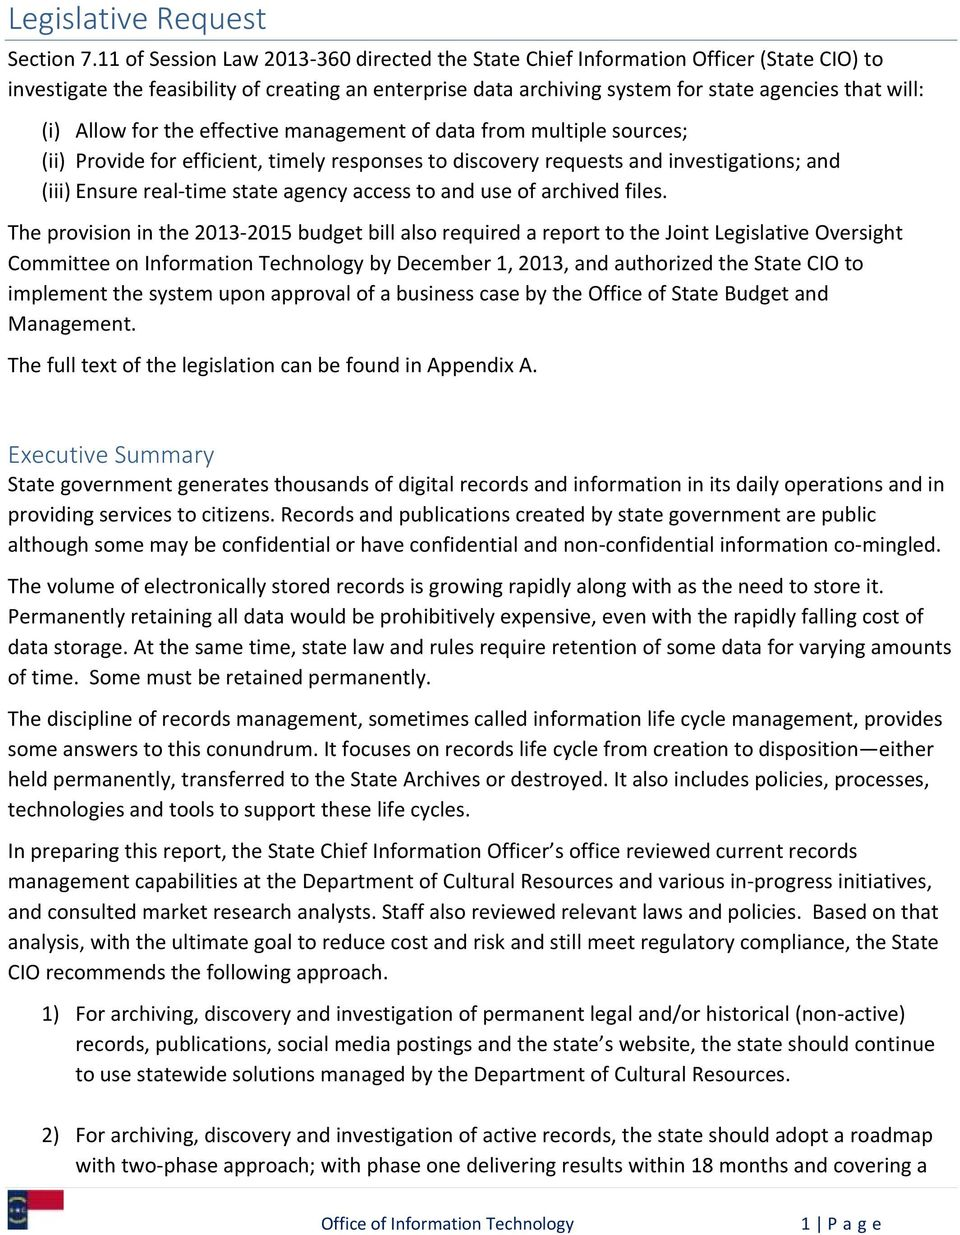 Allow for the effective management of data from multiple sources; (ii) Provide for efficient, timely responses to discovery requests and investigations; and (iii) Ensure real time state agency access